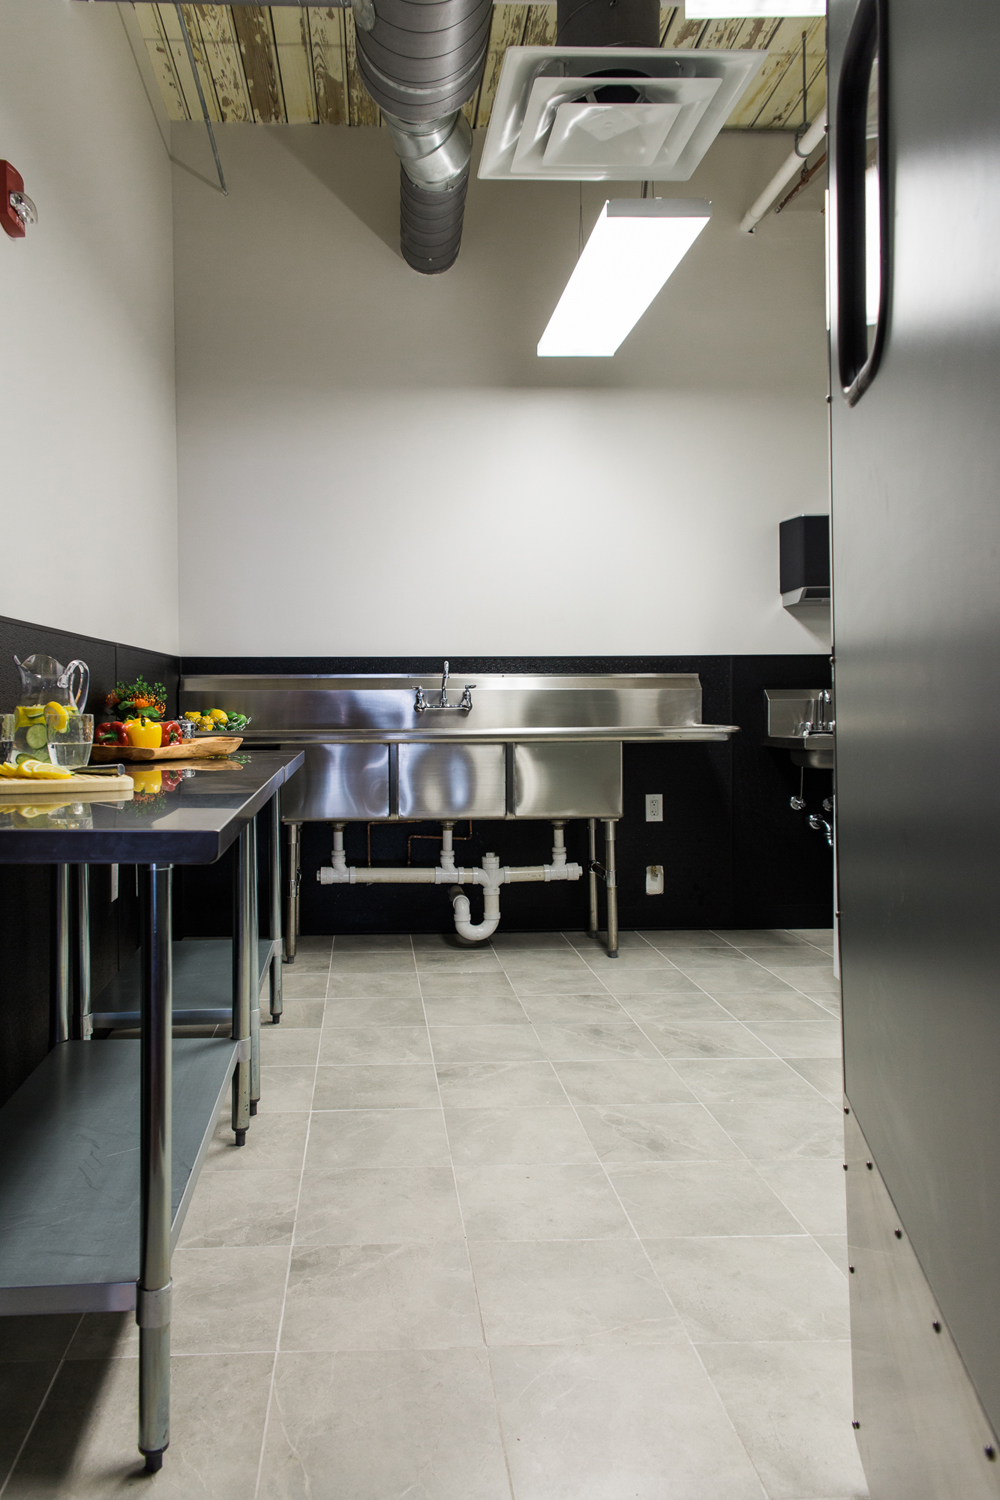 We even love the beauty,simplicity and function of the prep space for caterers!